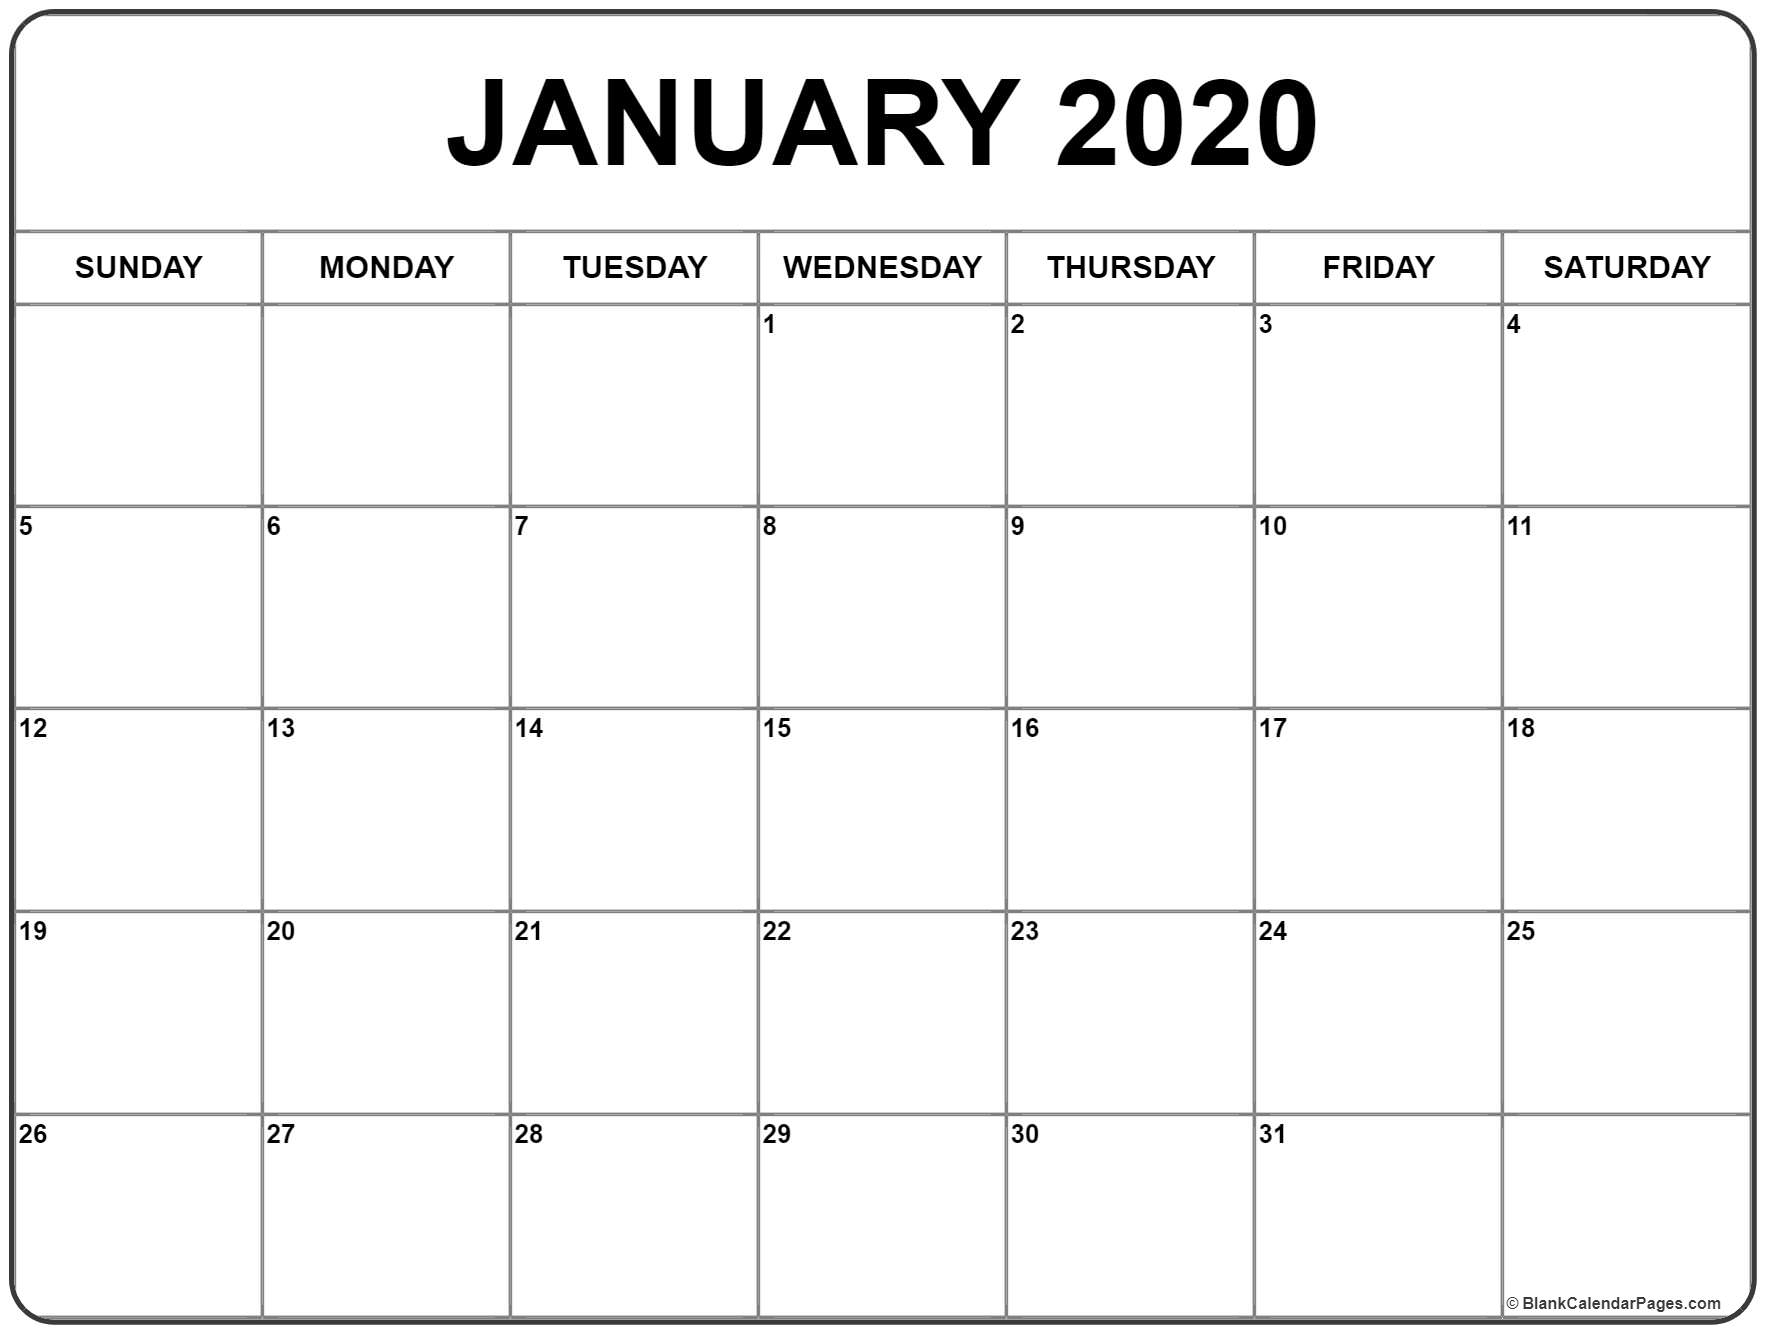 January 2020 Calendar | Free Printable Monthly Calendars in 2020 Printable Calender Imom